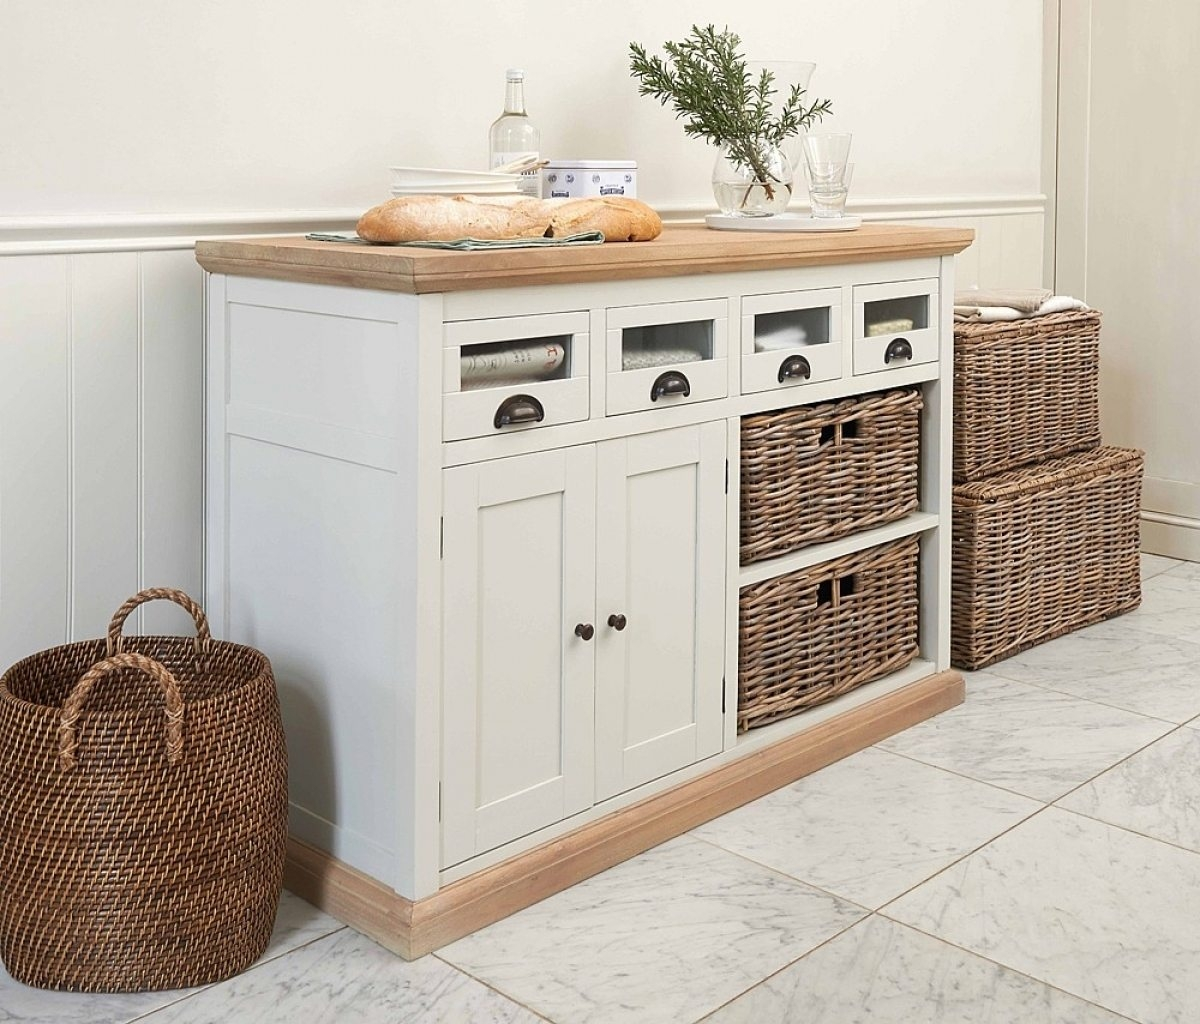 Decorative Kitchen Storage Cabinets